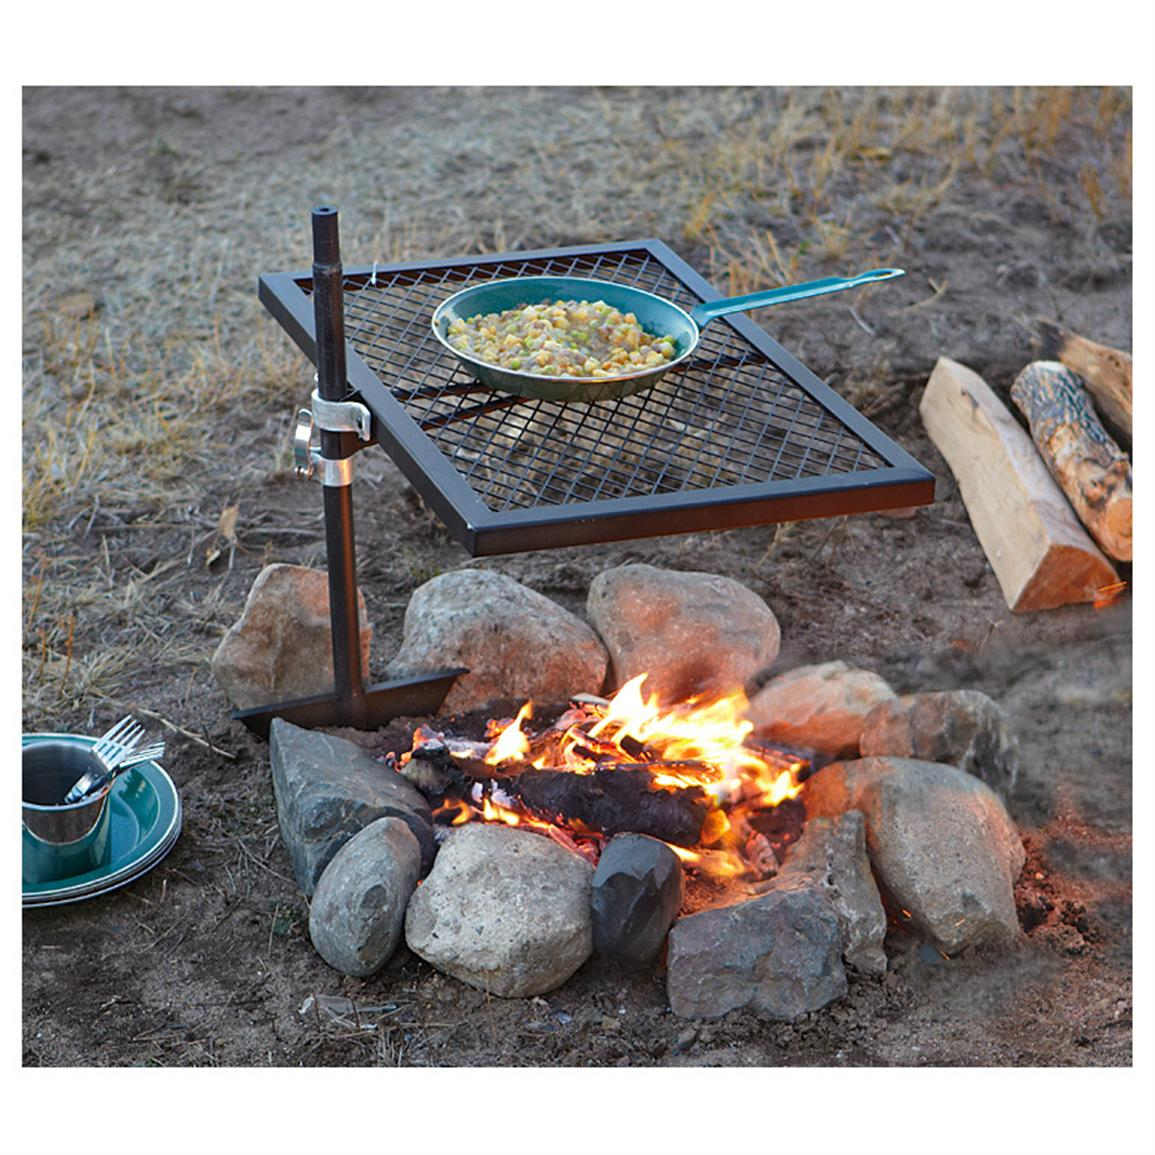 Fire Pit with Cooking Grate - Fire Pit With Cooking Grate FIREPLACE DESIGN IDEAS